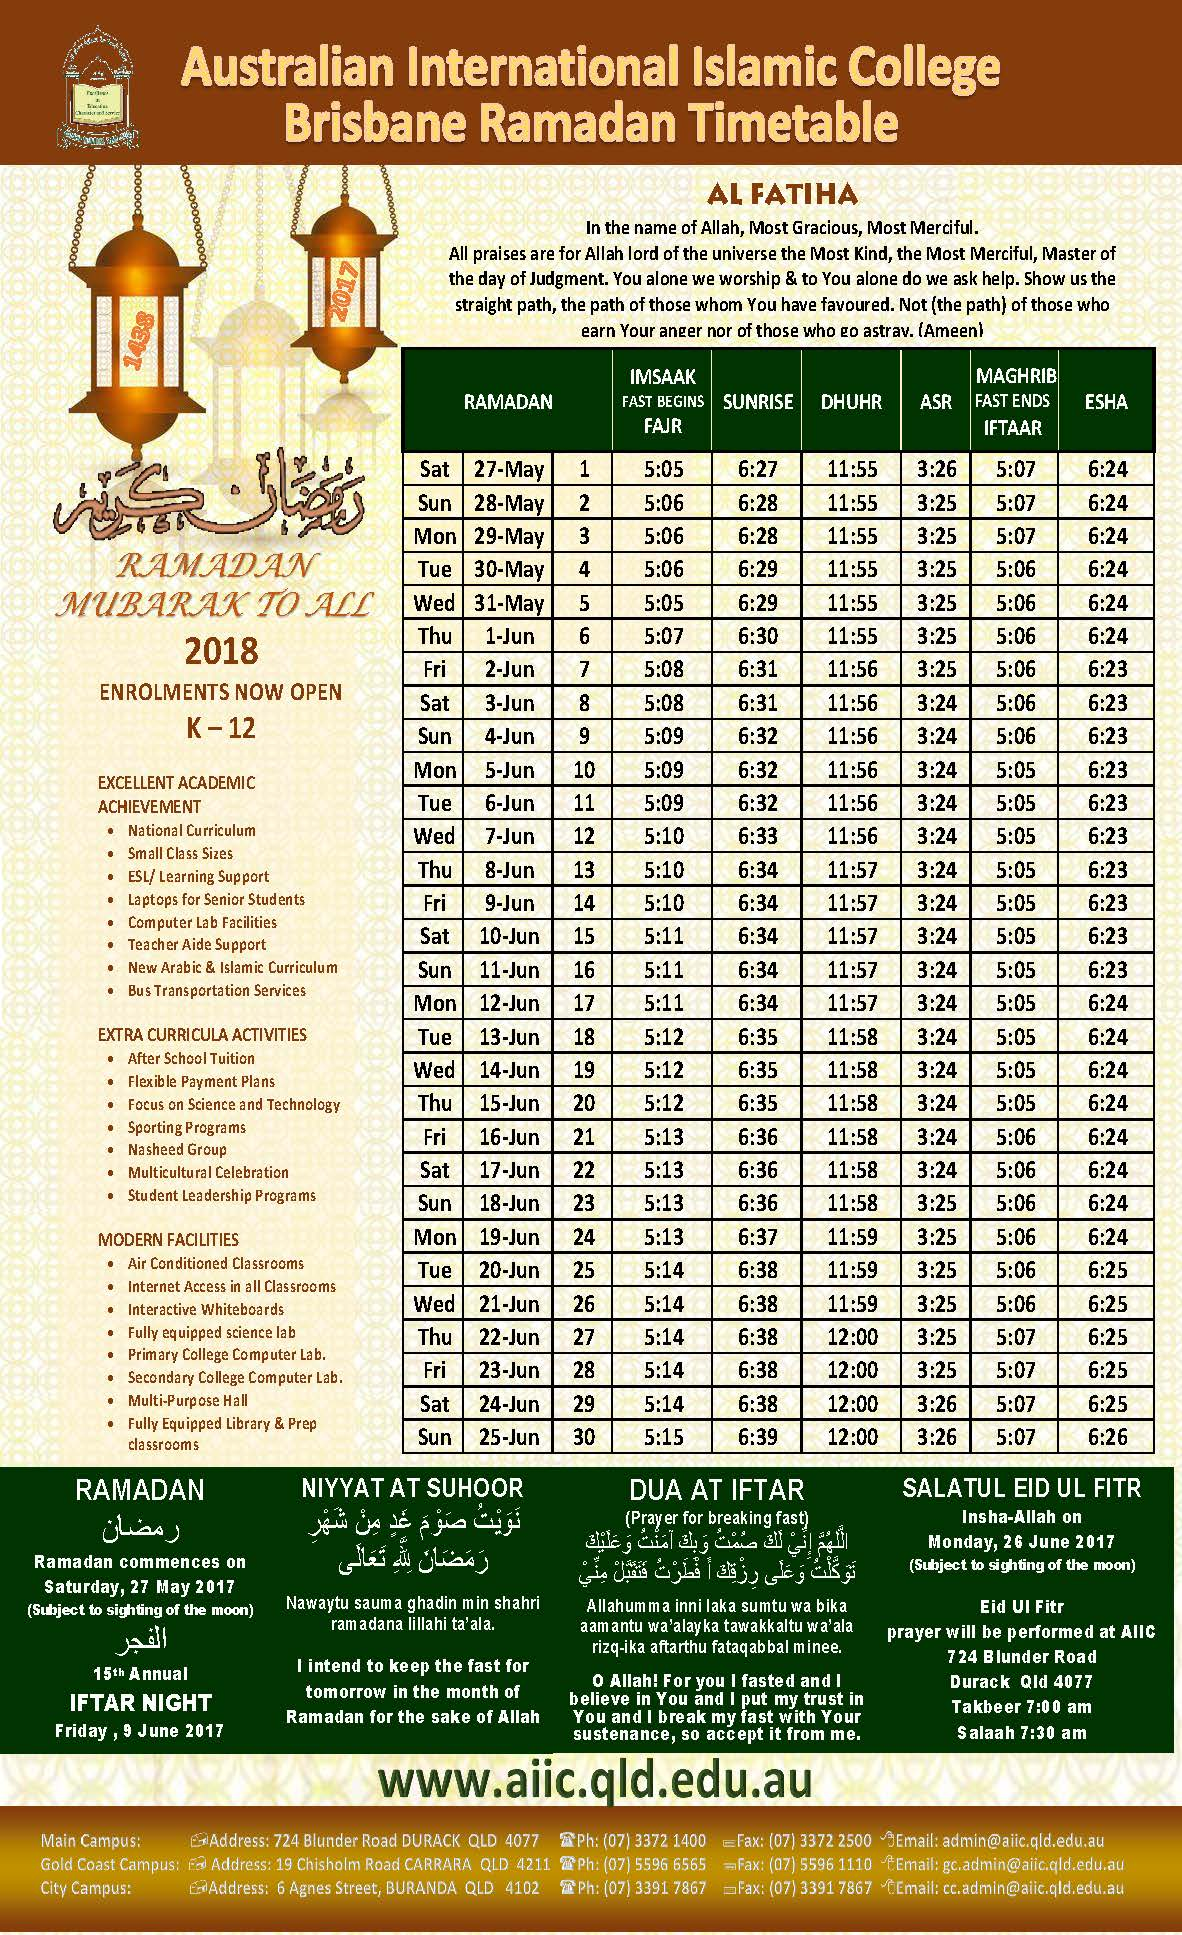 2017 RAMADAN TIME TABLE